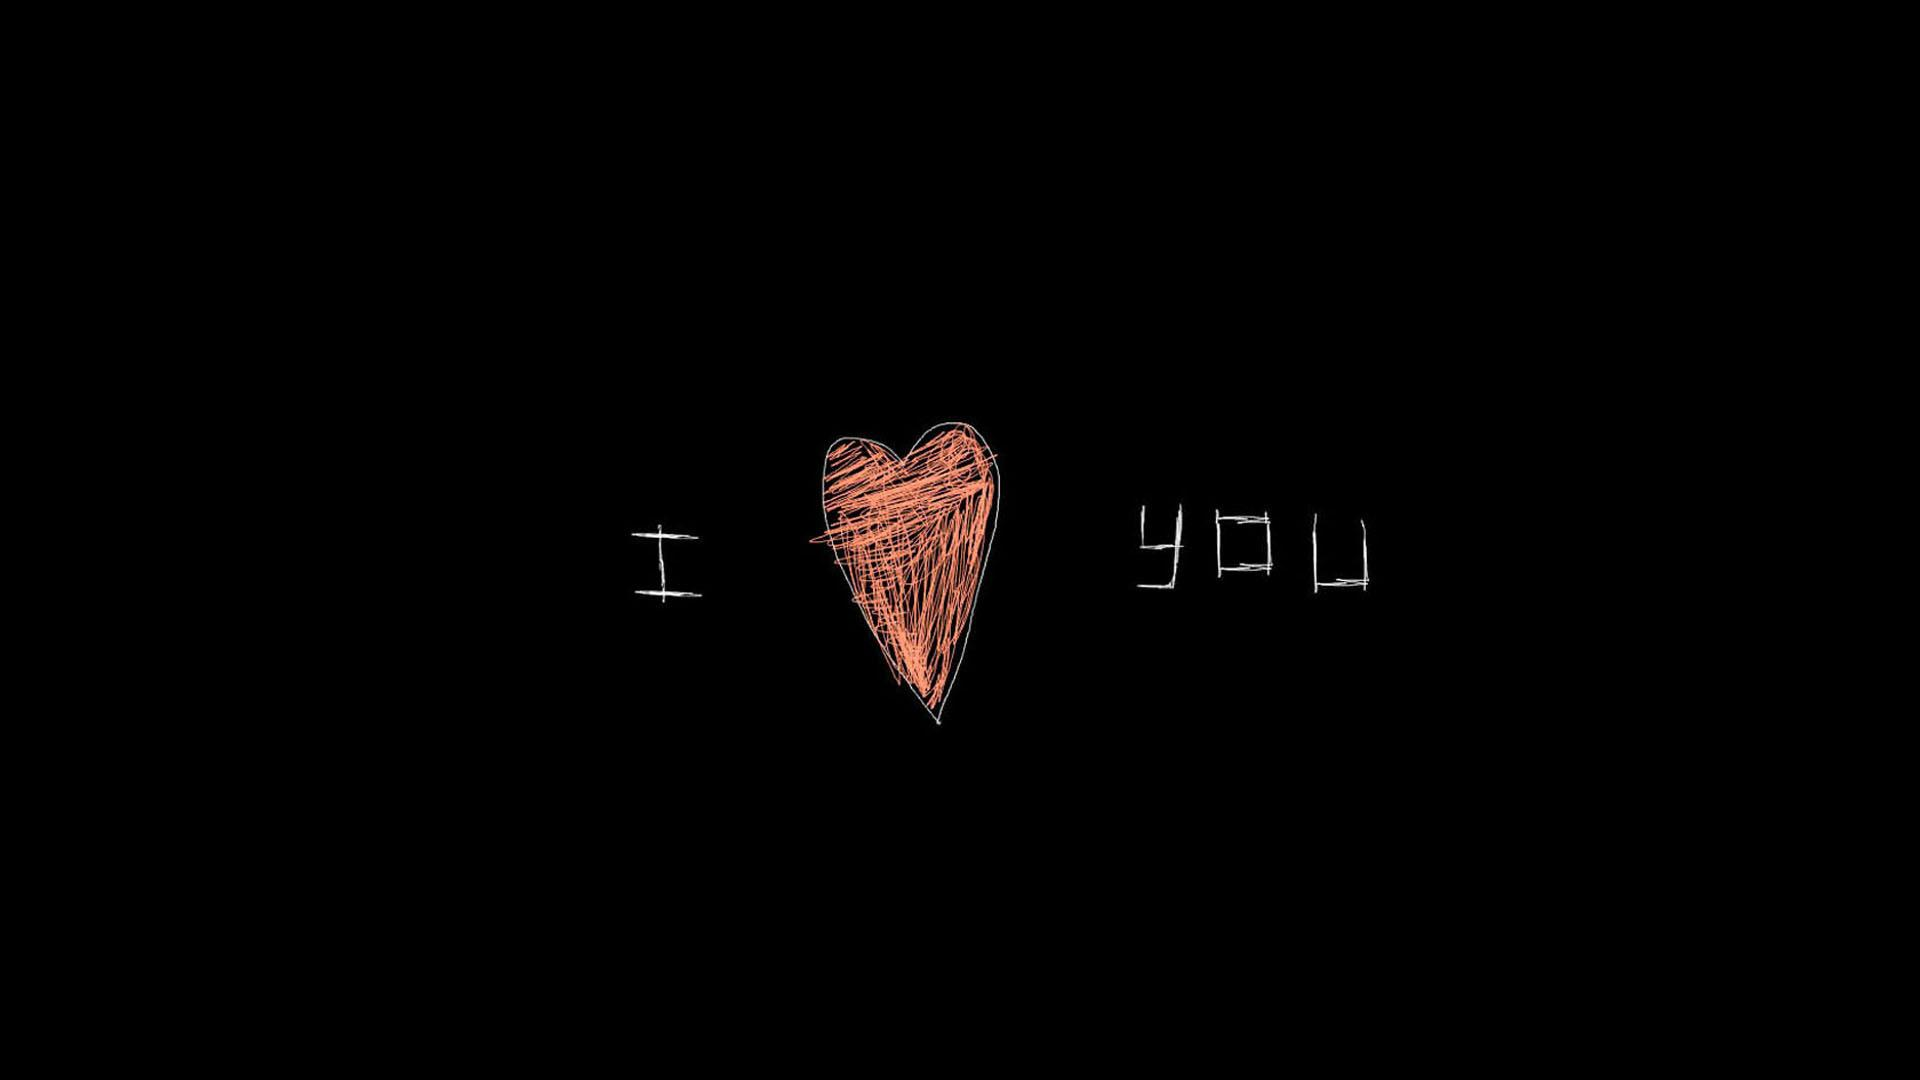 I-Love-You-Heart-Art-HD-Wallpaper